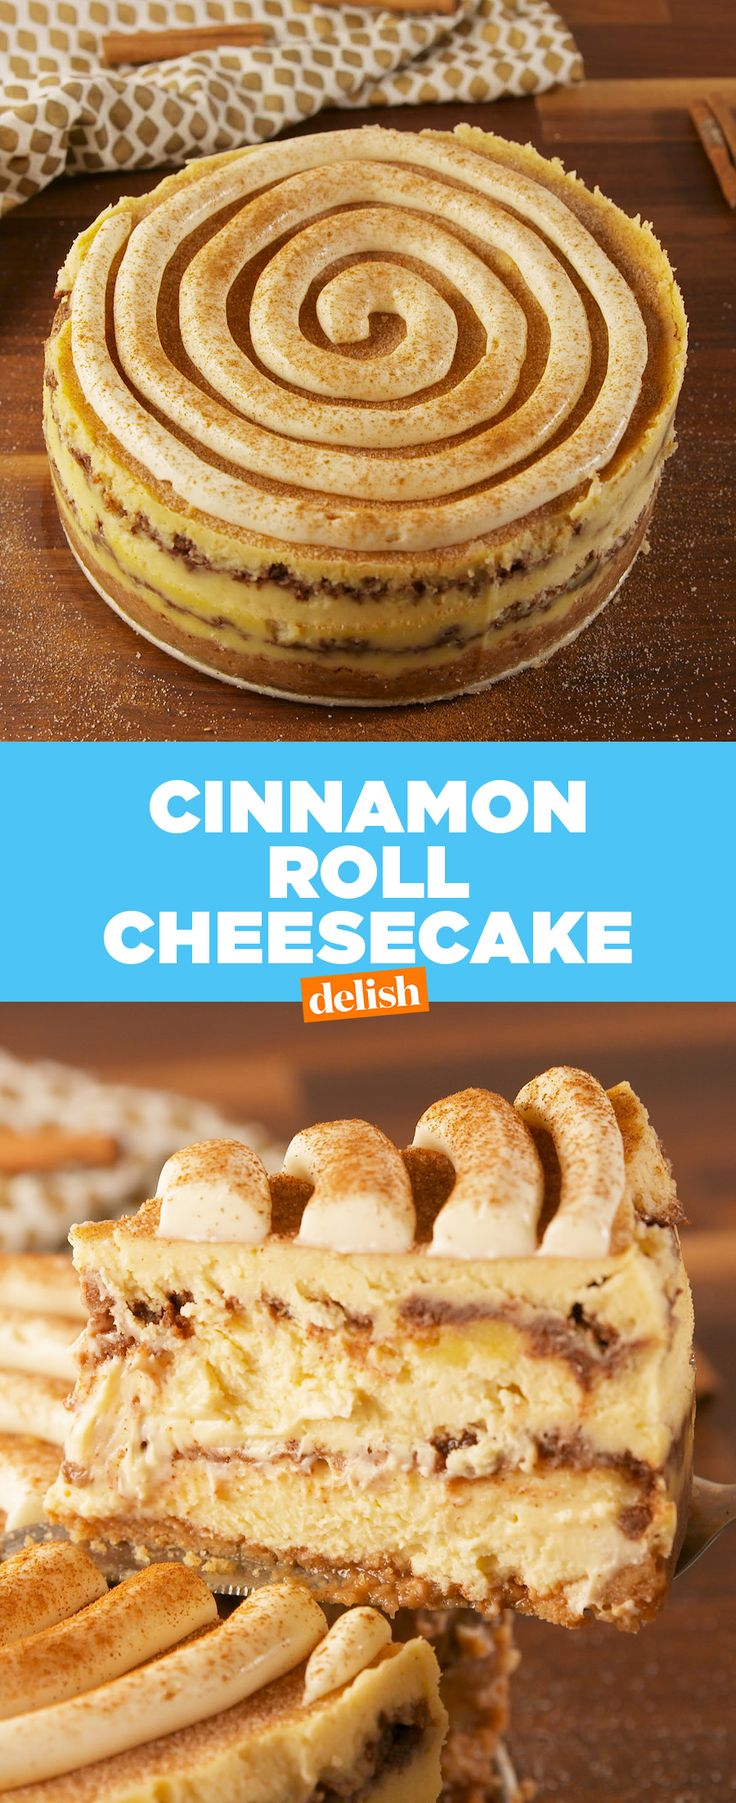 Cinnamon Roll Cheesecake makes eating dessert for breakfast totally acceptable | Posted By: DebbieNet.com